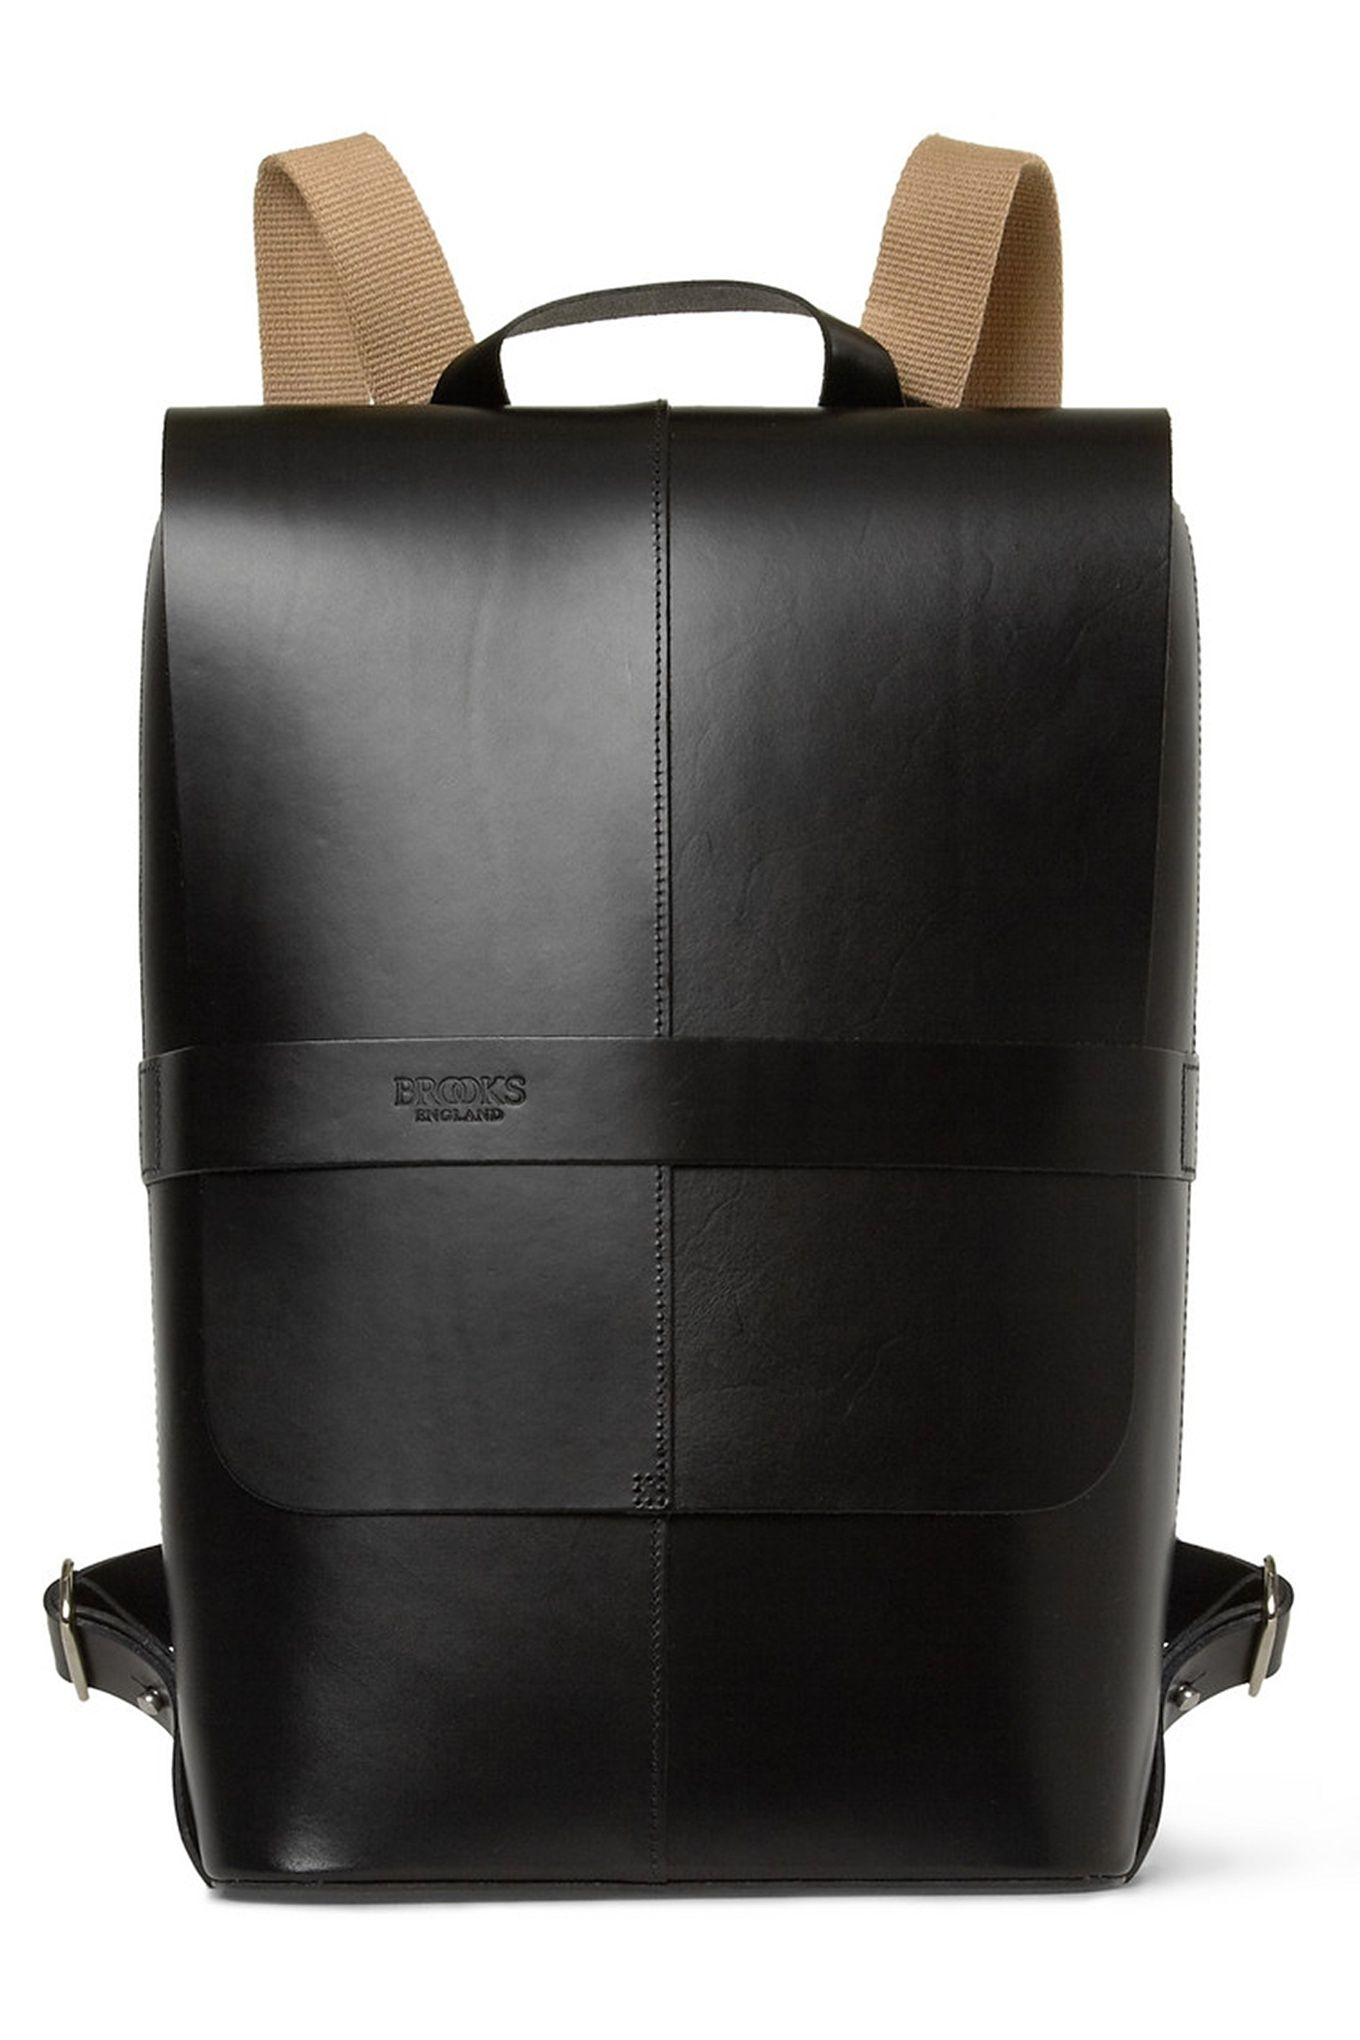 The fashion edit: top 10 rucksacks for men – in pictures